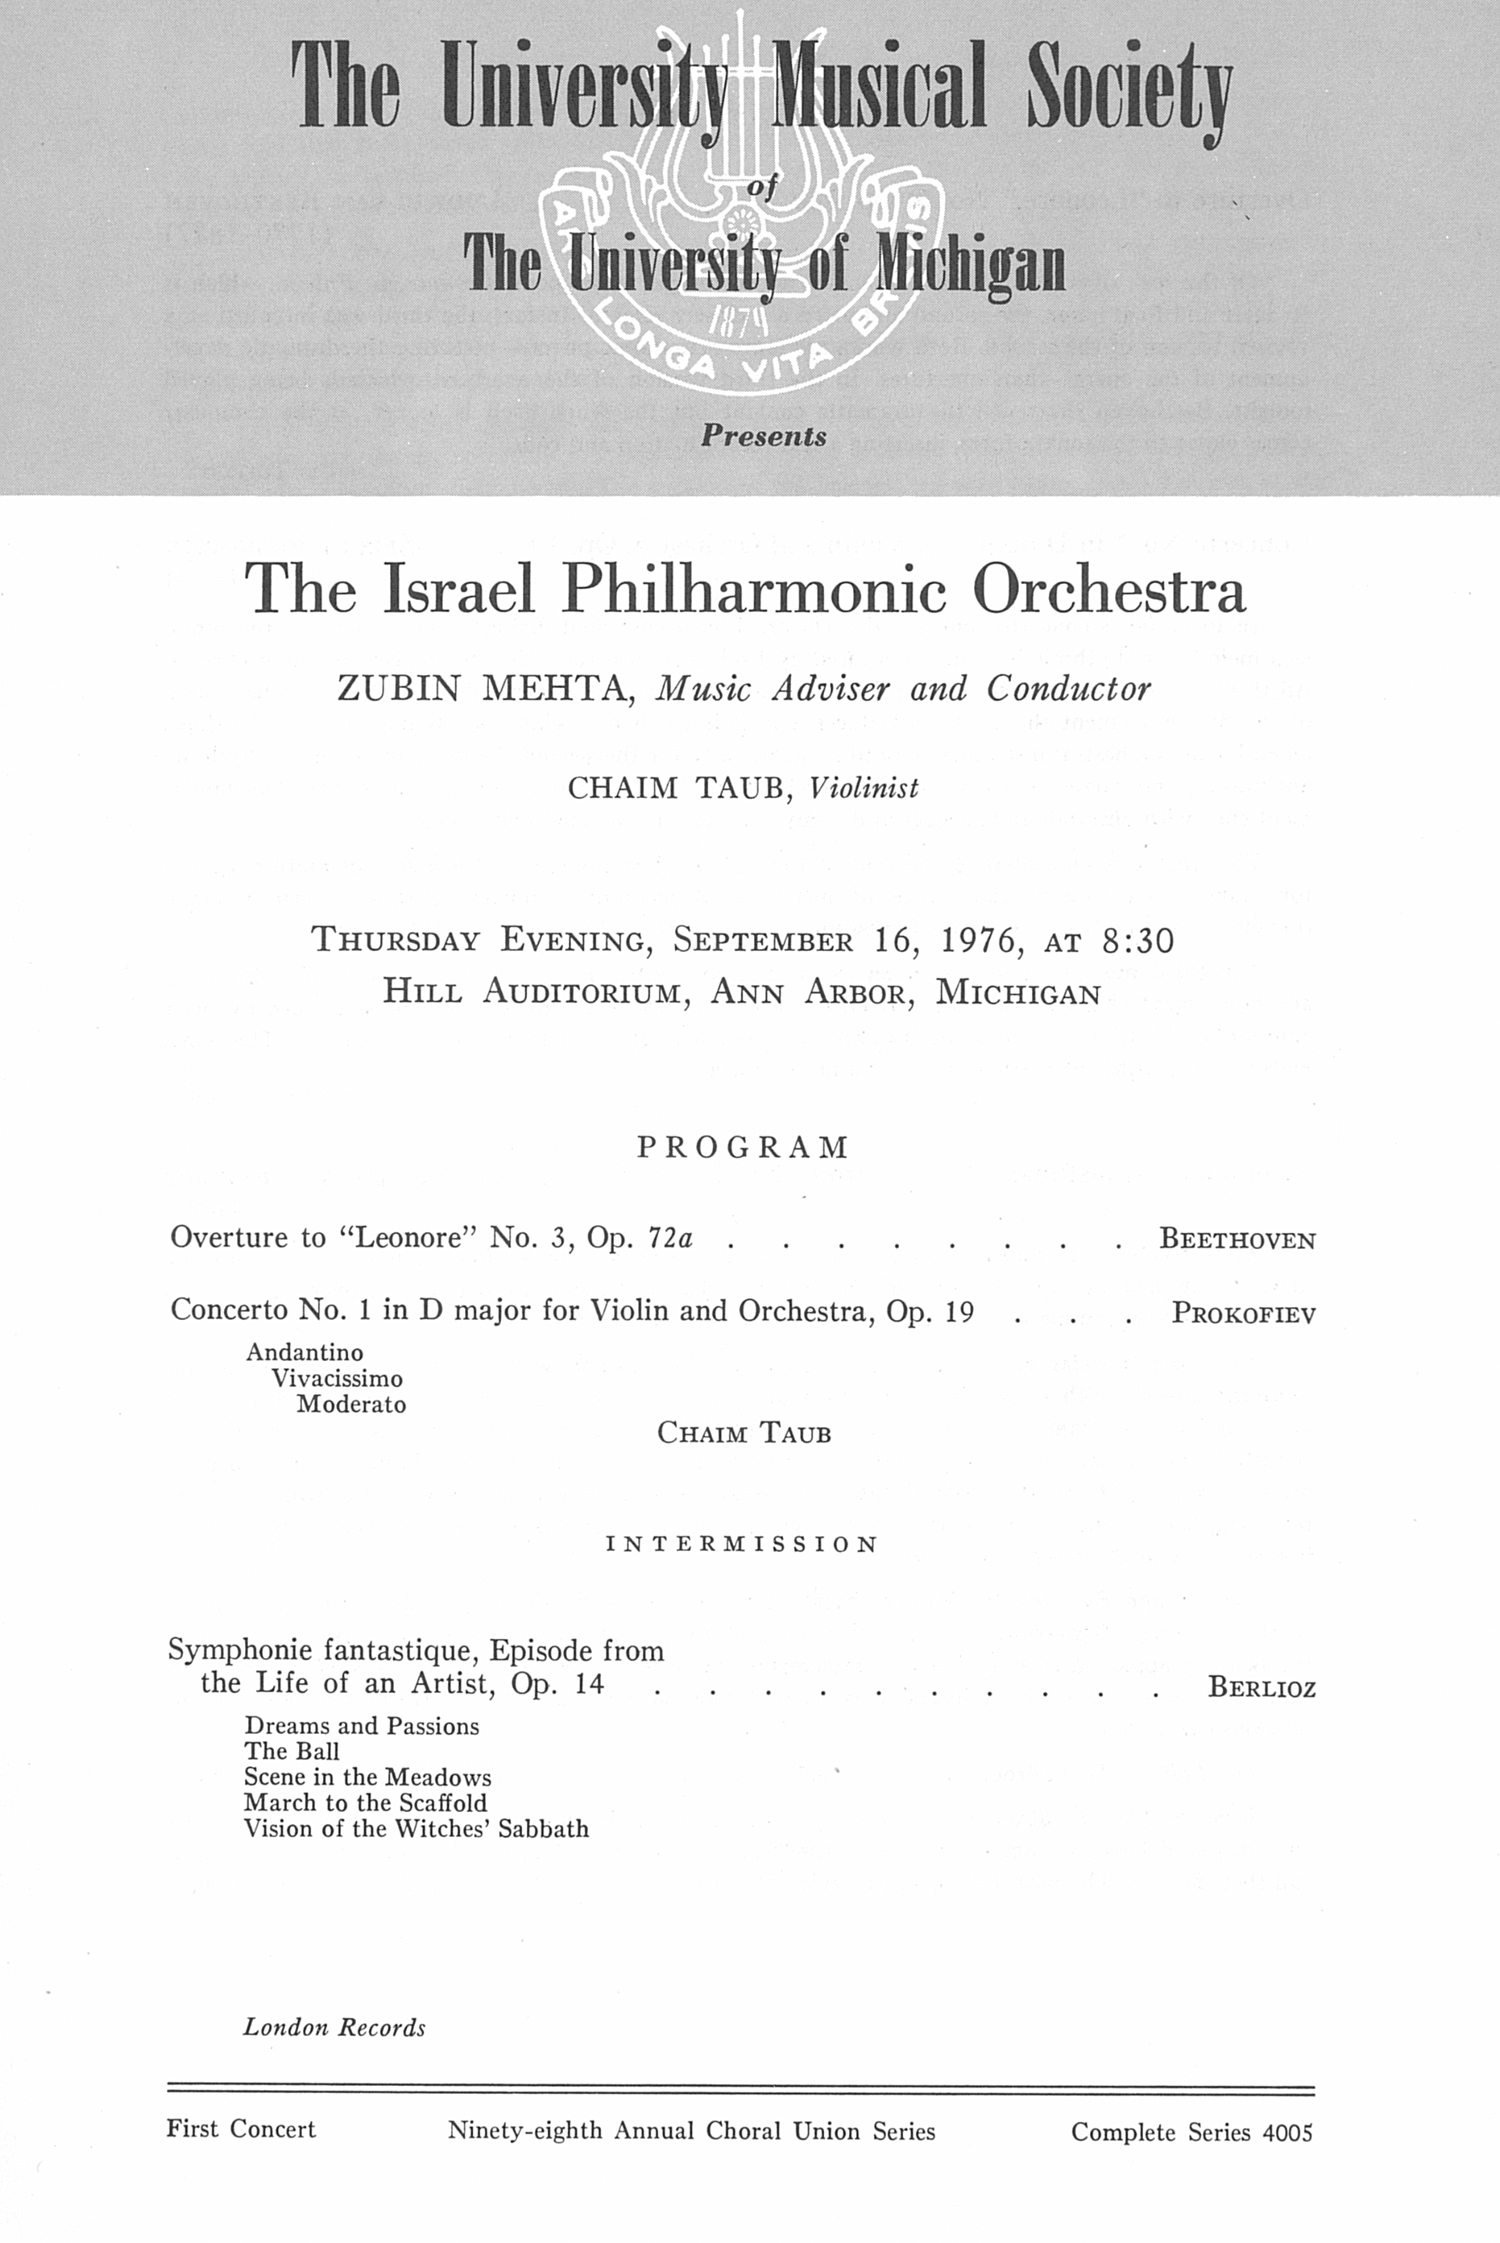 UMS Concert Program, September 16, 1976: The Israel Philharmonic Orchestra --  image